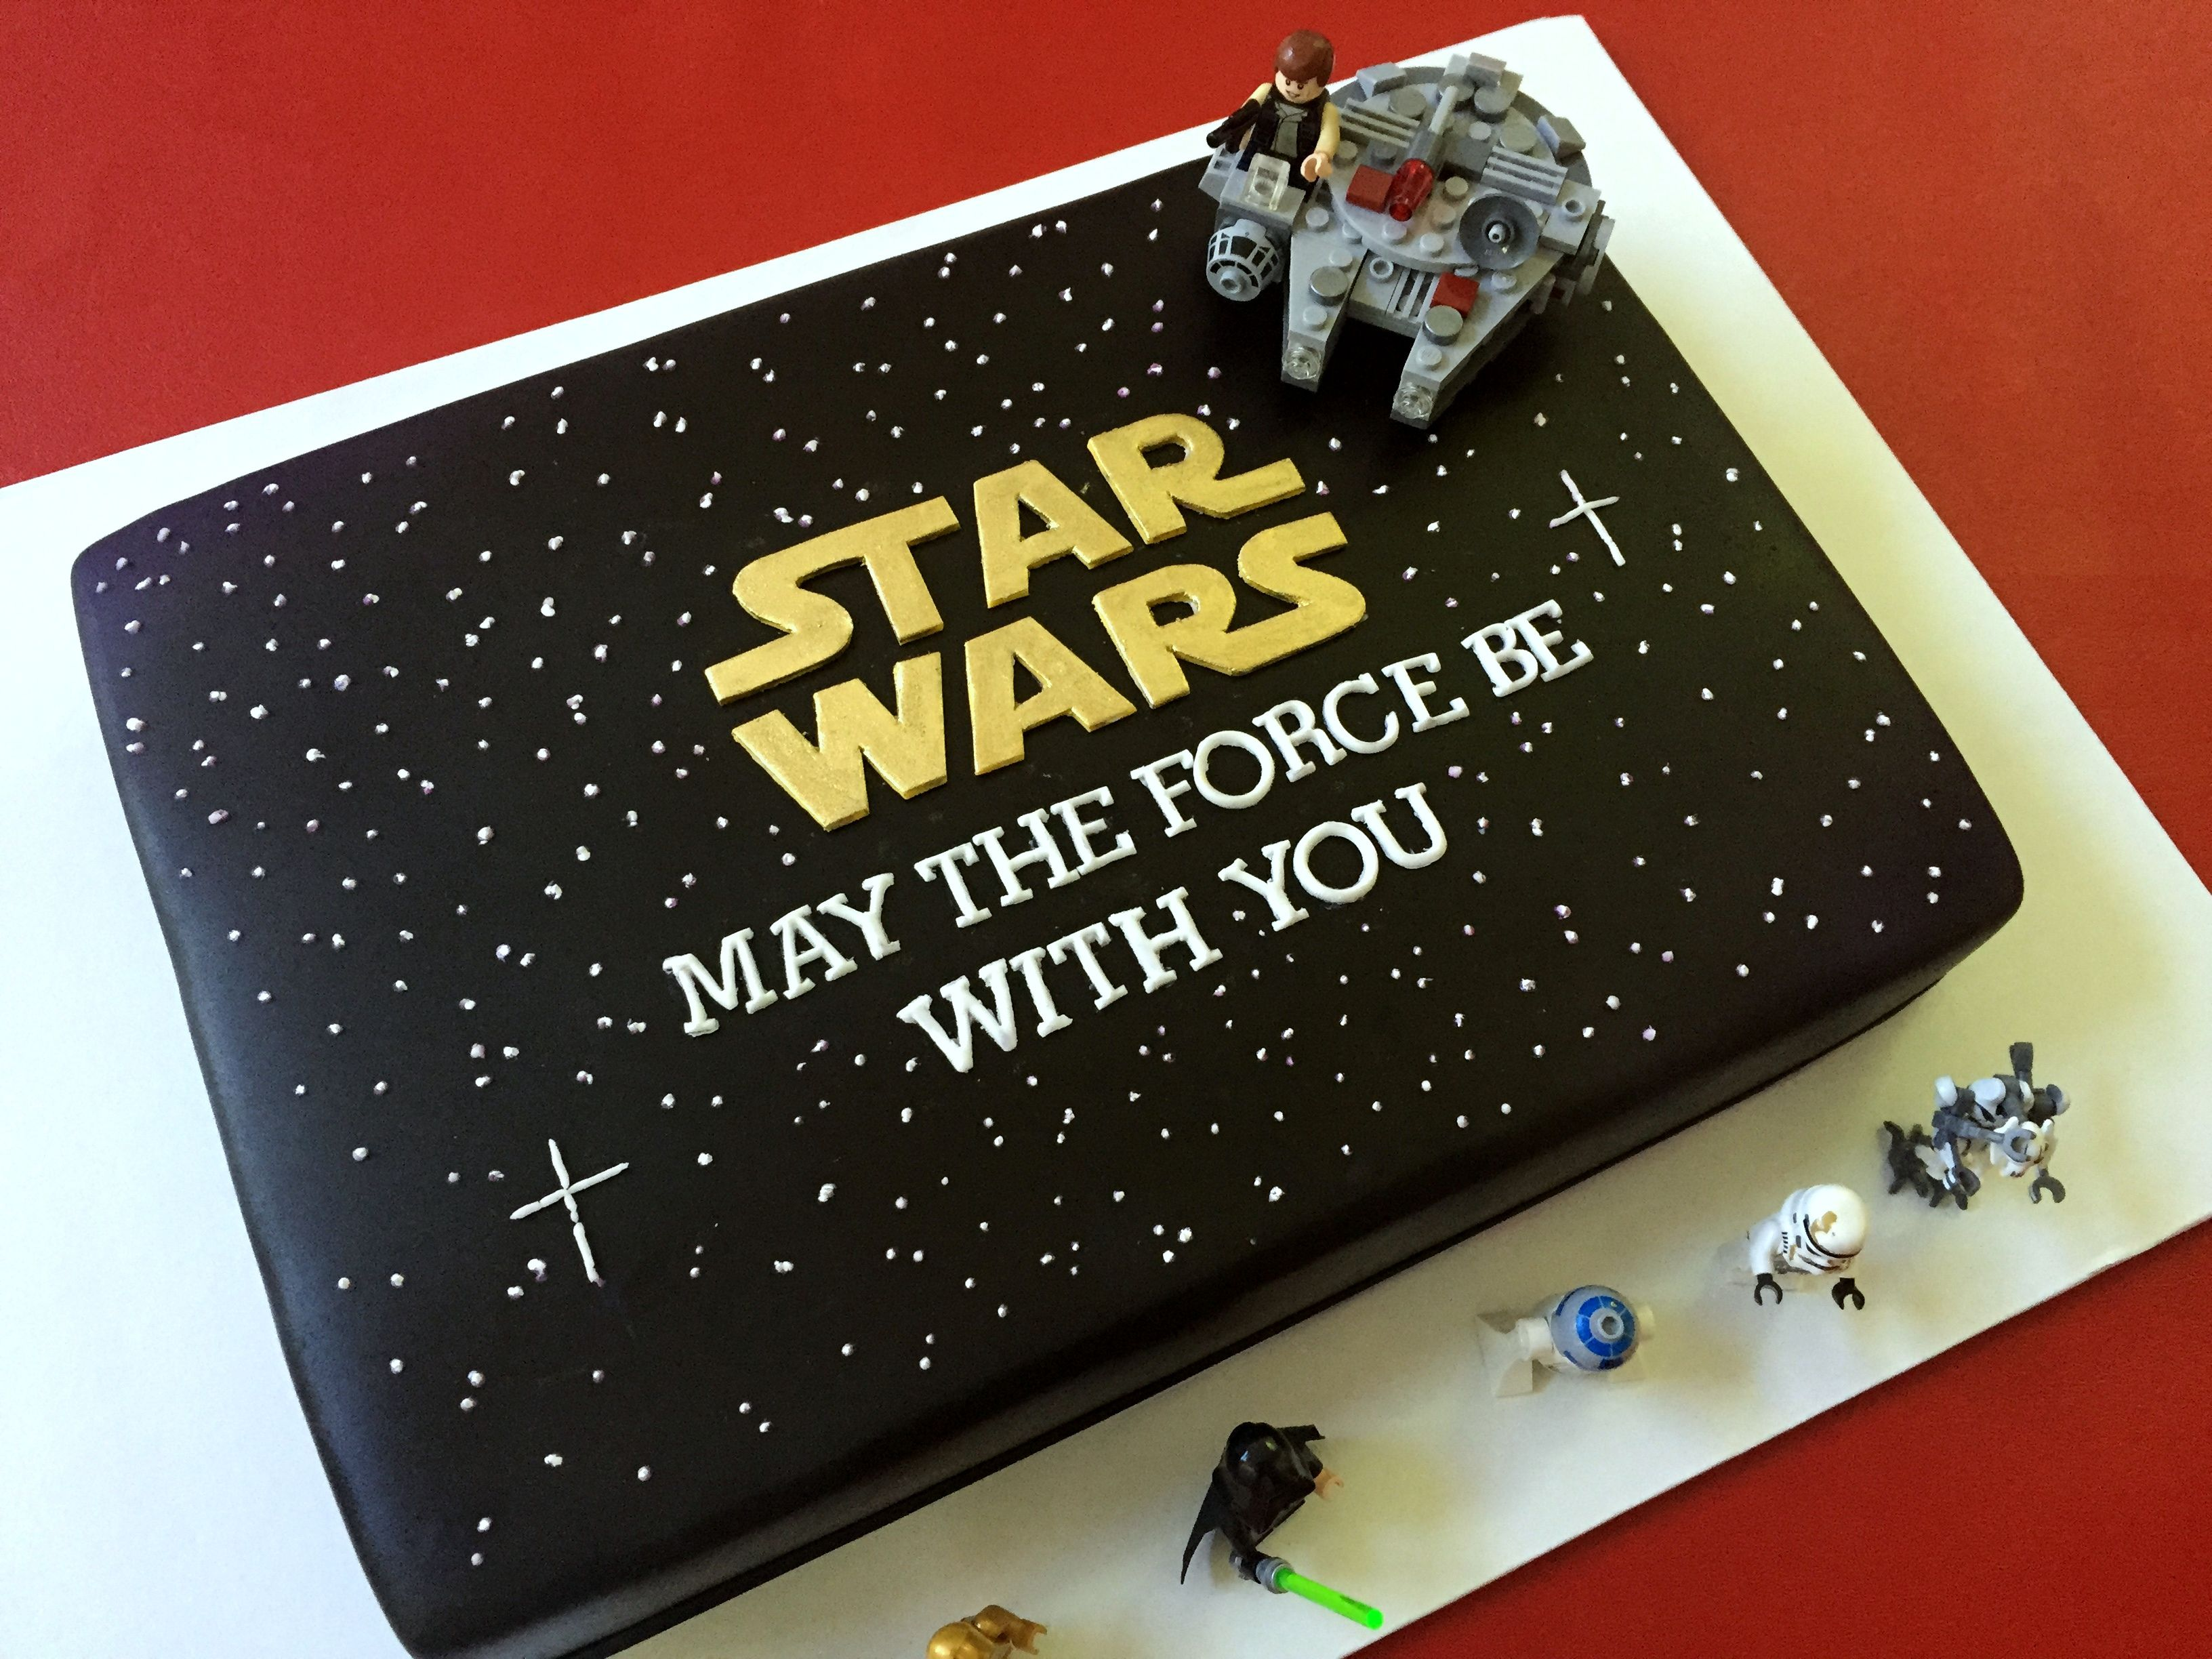 star wars cake cakes star wars pinterest star wars cake star and cake. Black Bedroom Furniture Sets. Home Design Ideas